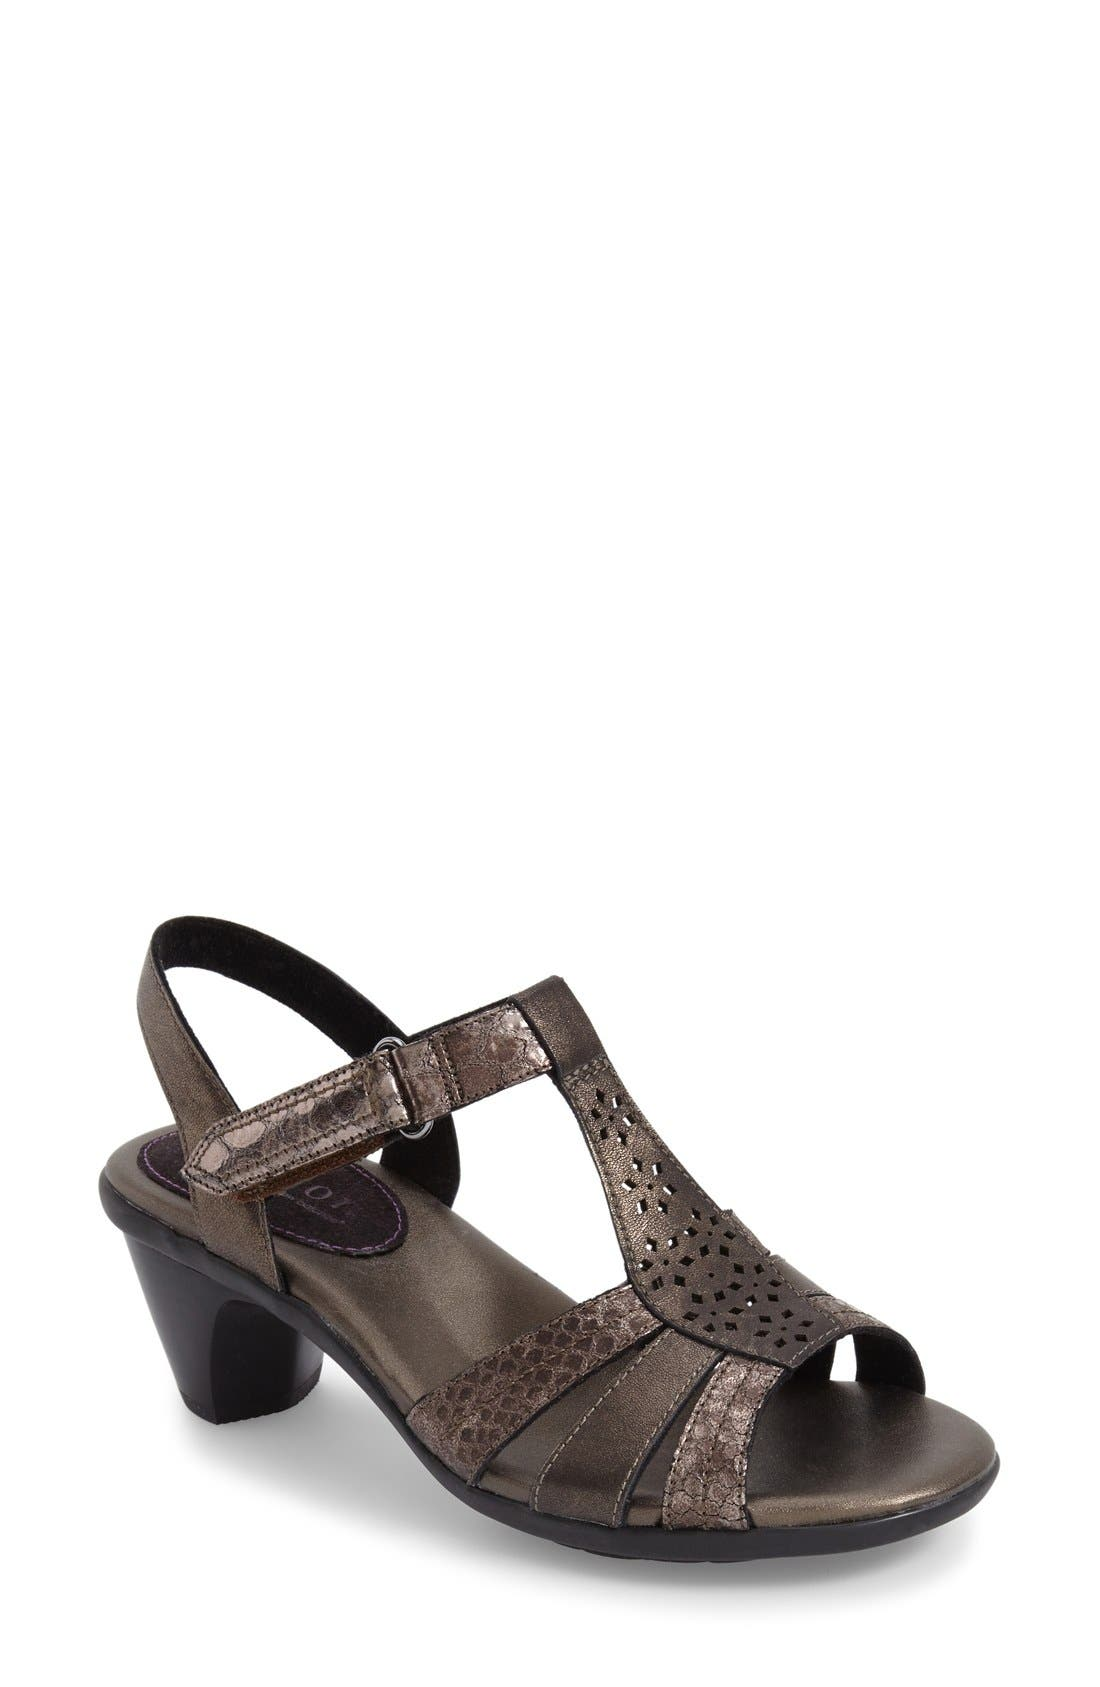 Alternate Image 1 Selected - Aravon 'Mary' T-Strap Sandal (Women)